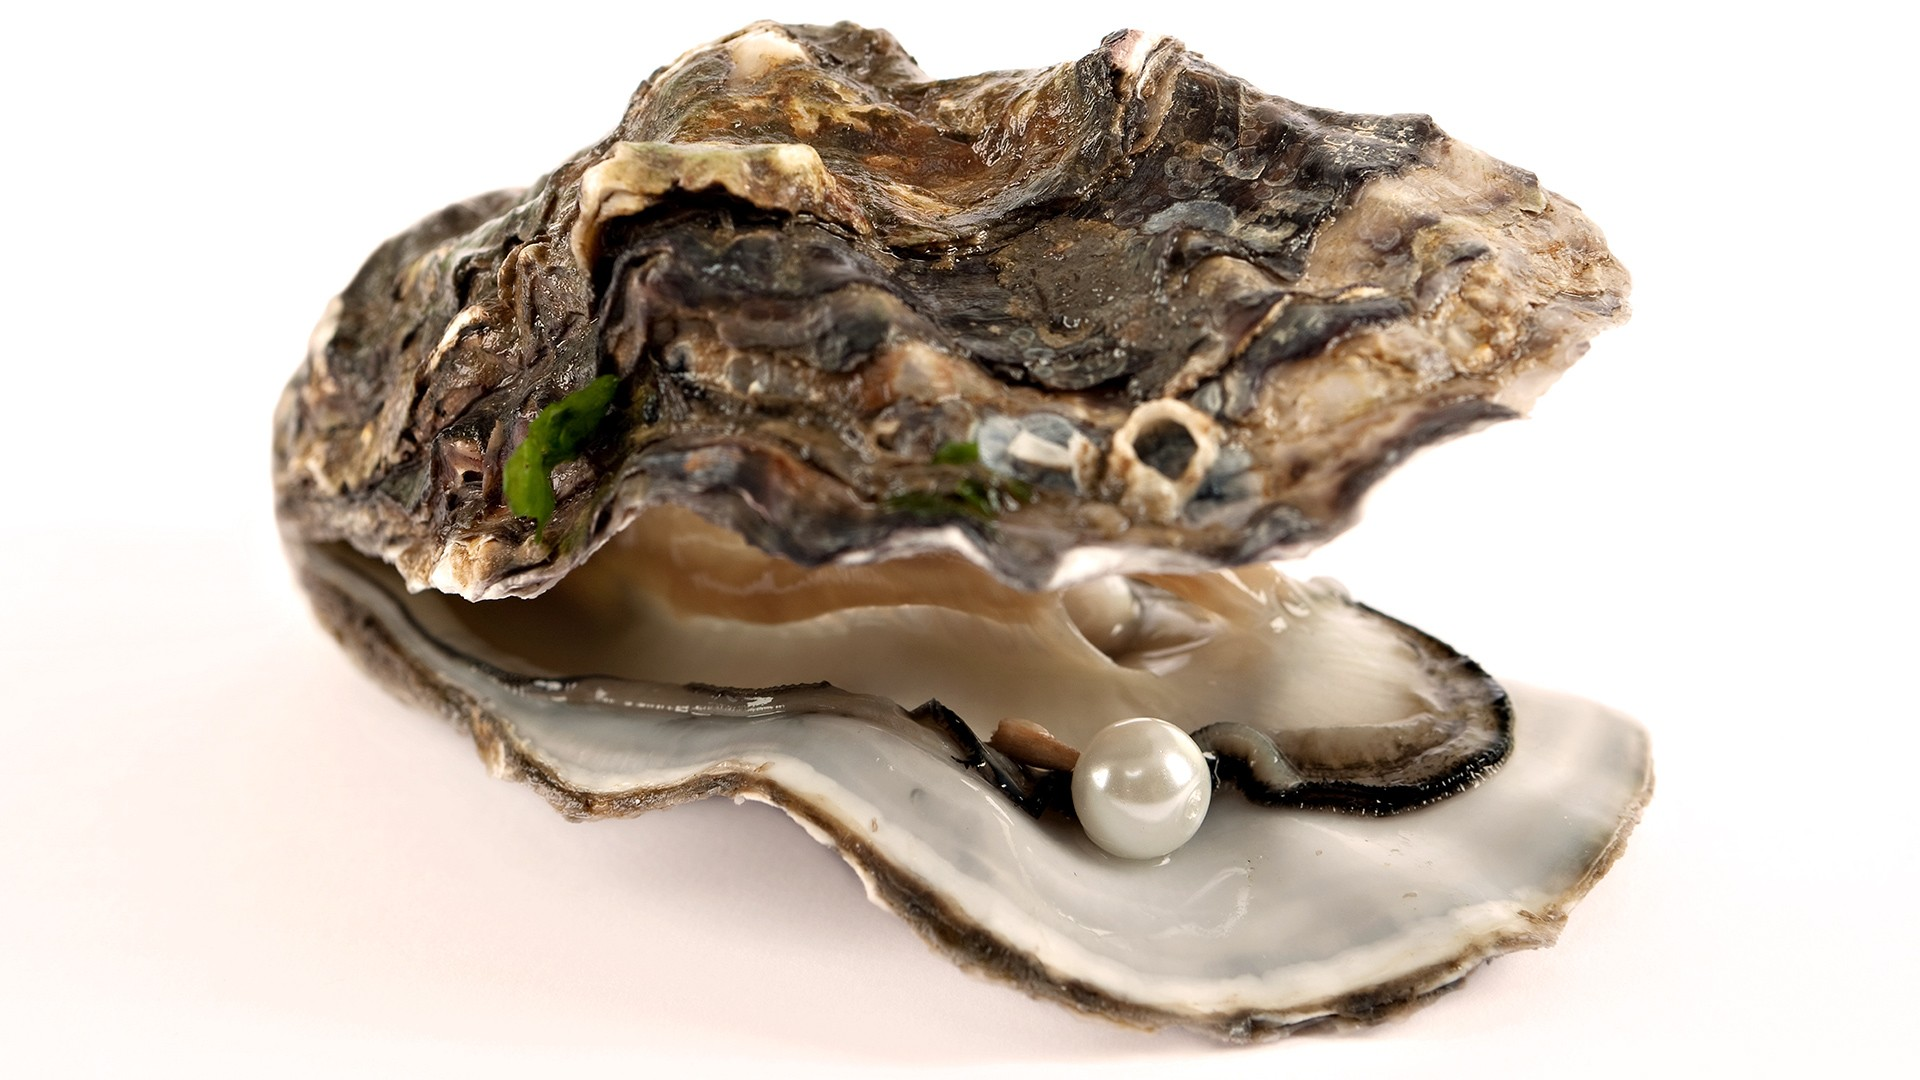 Live oysters with pearls inside - photo#8